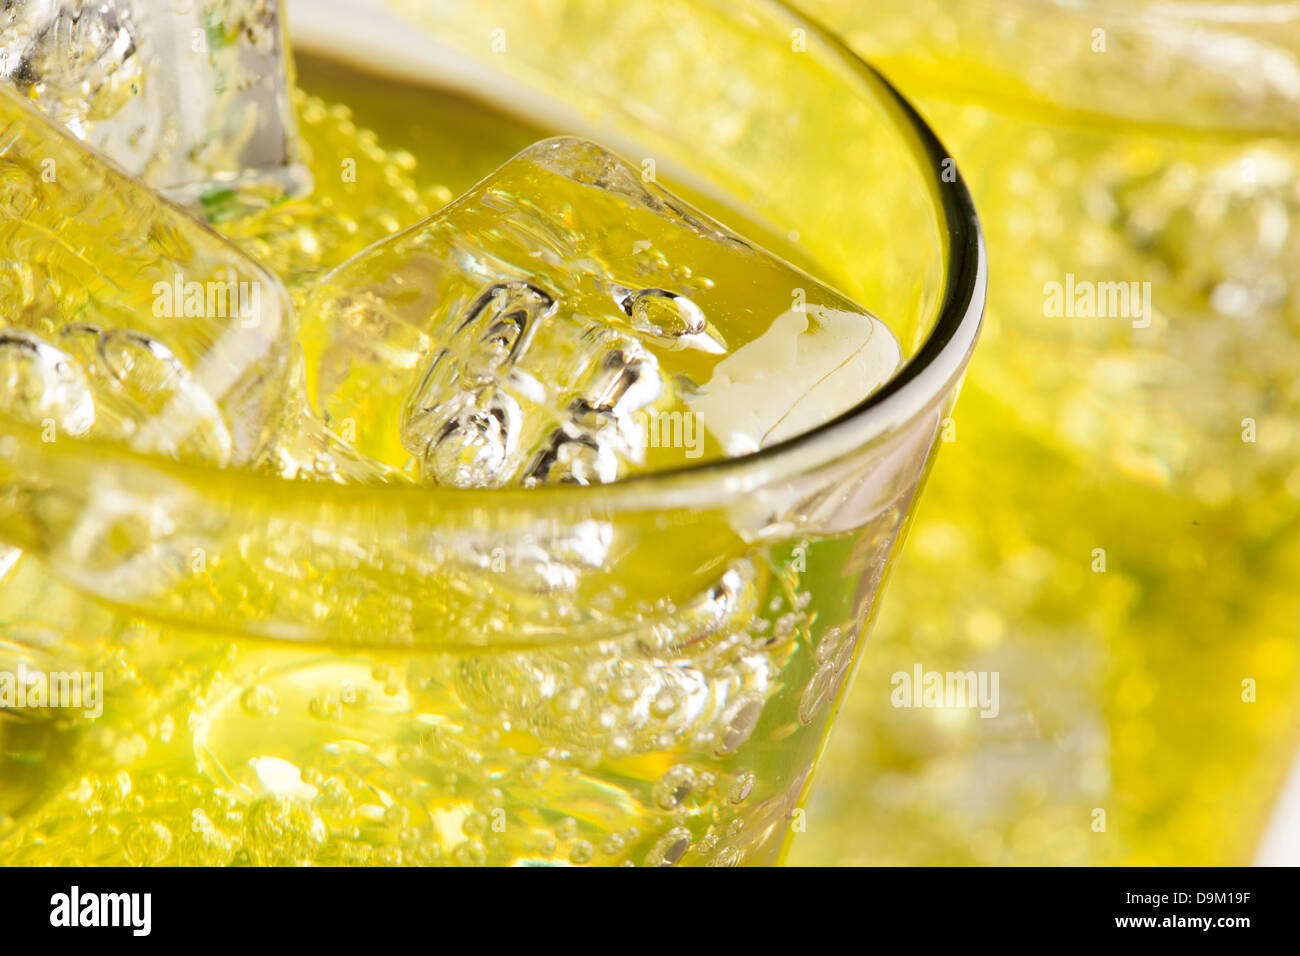 Green Energy Drink Soda against a background - Stock Image